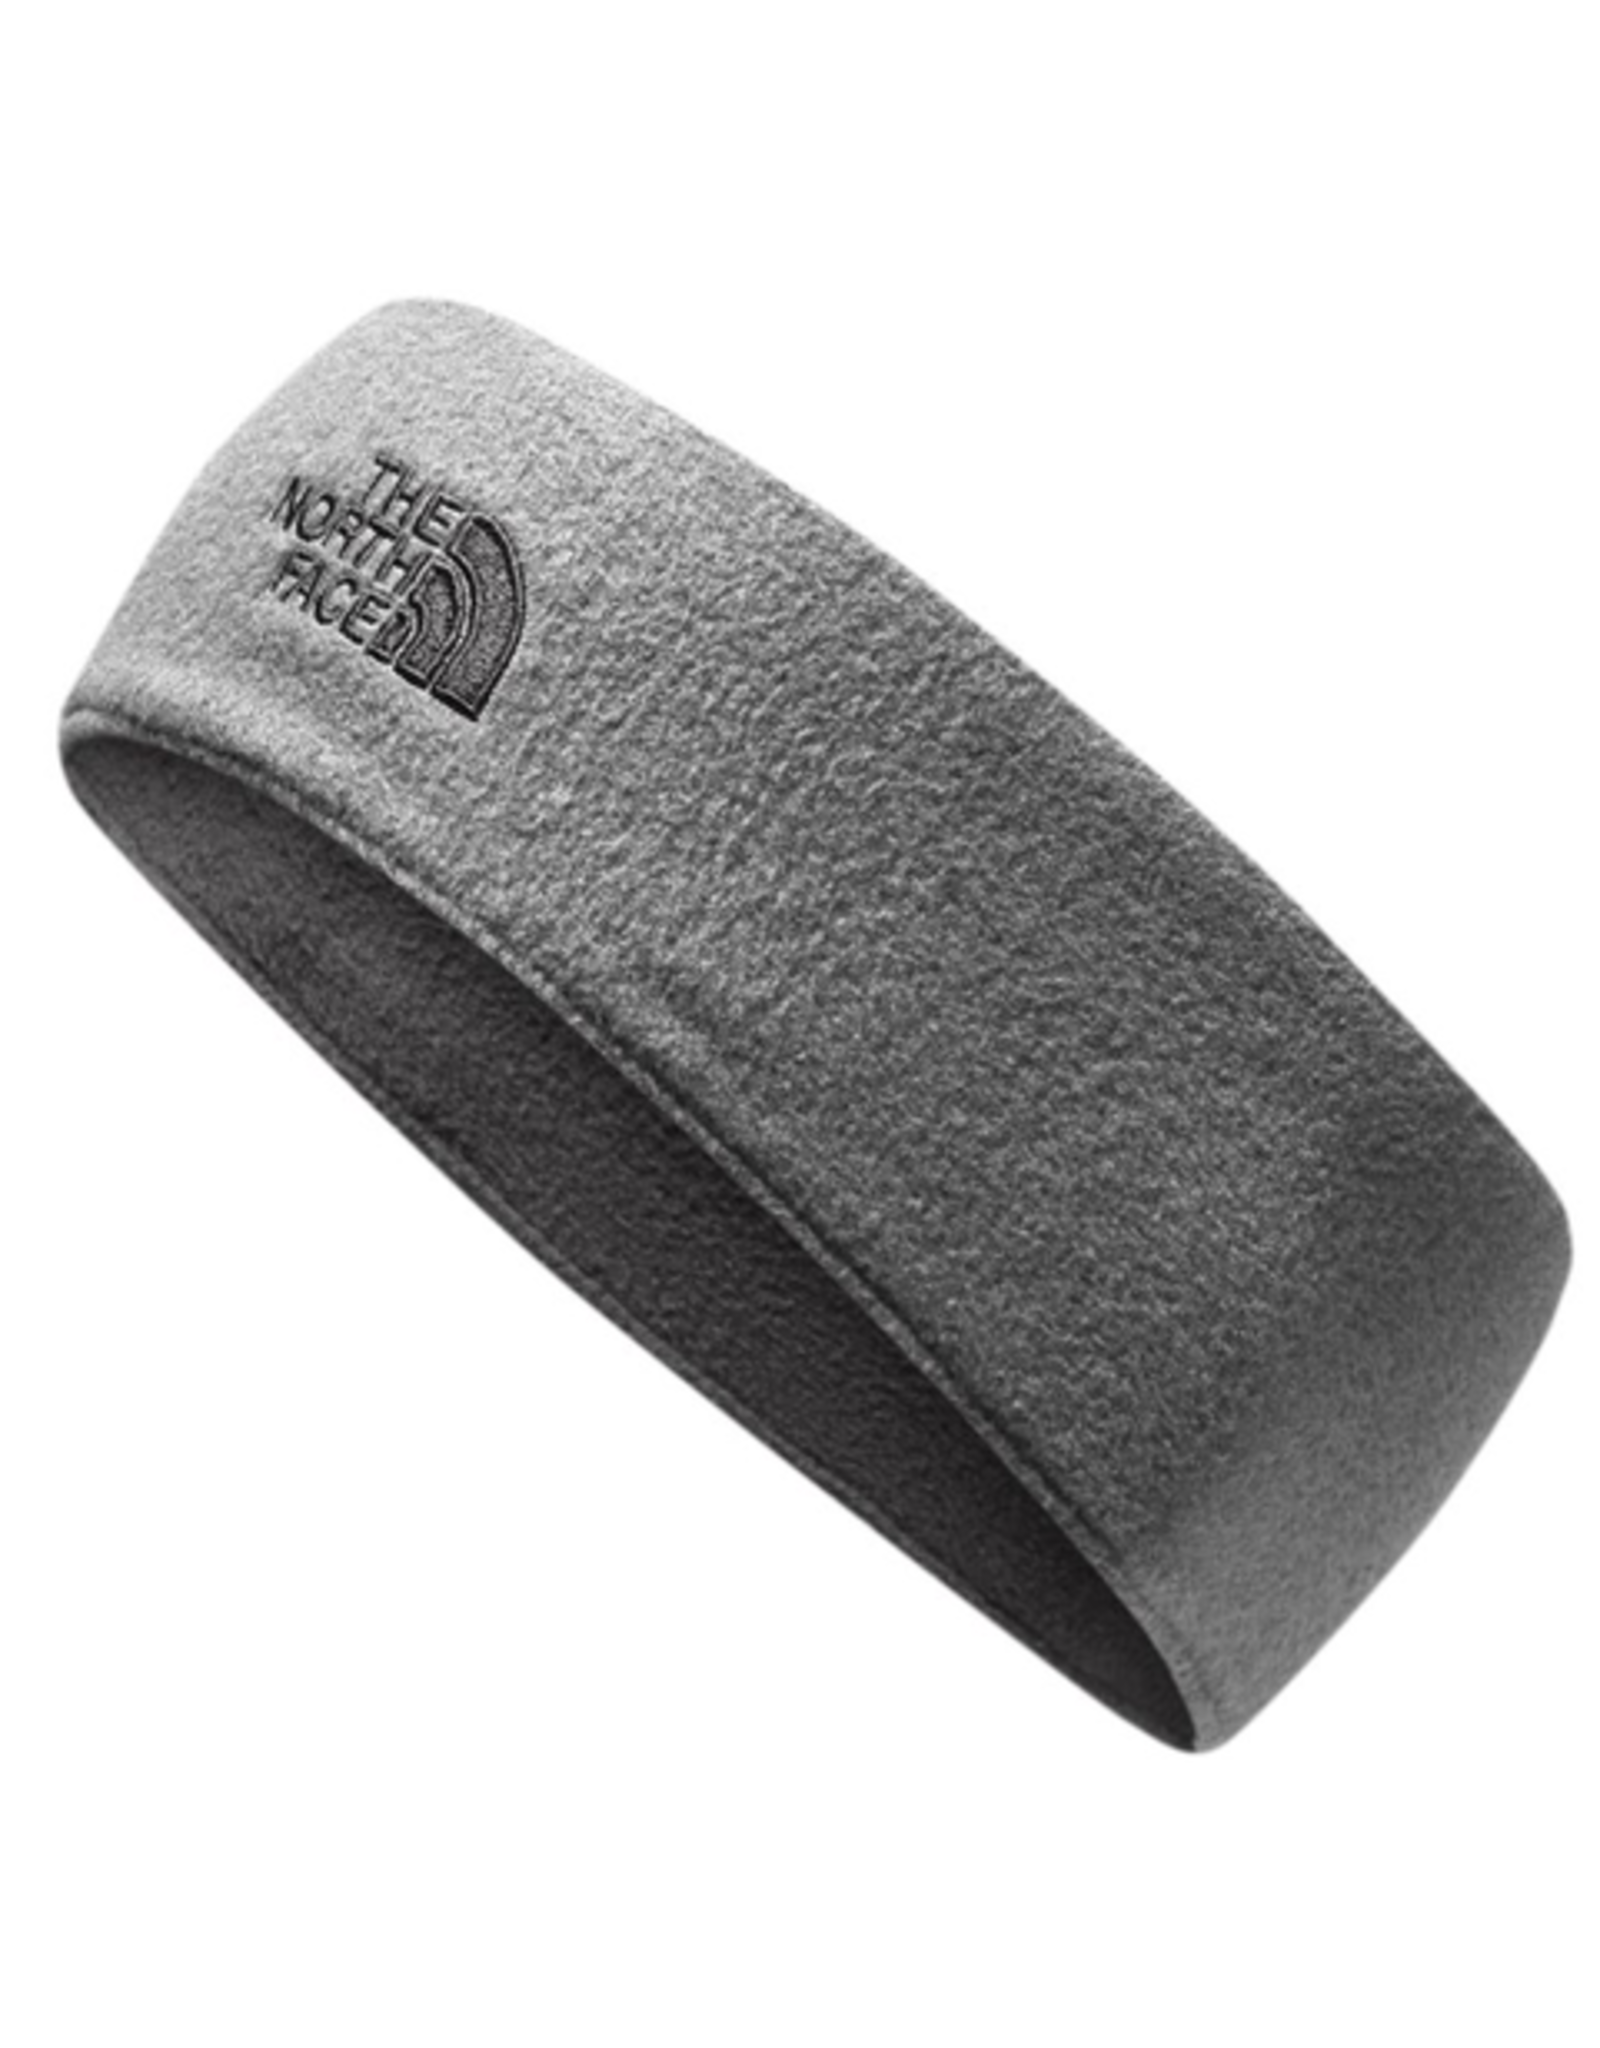 Garmin North Face Standard Issue Earband